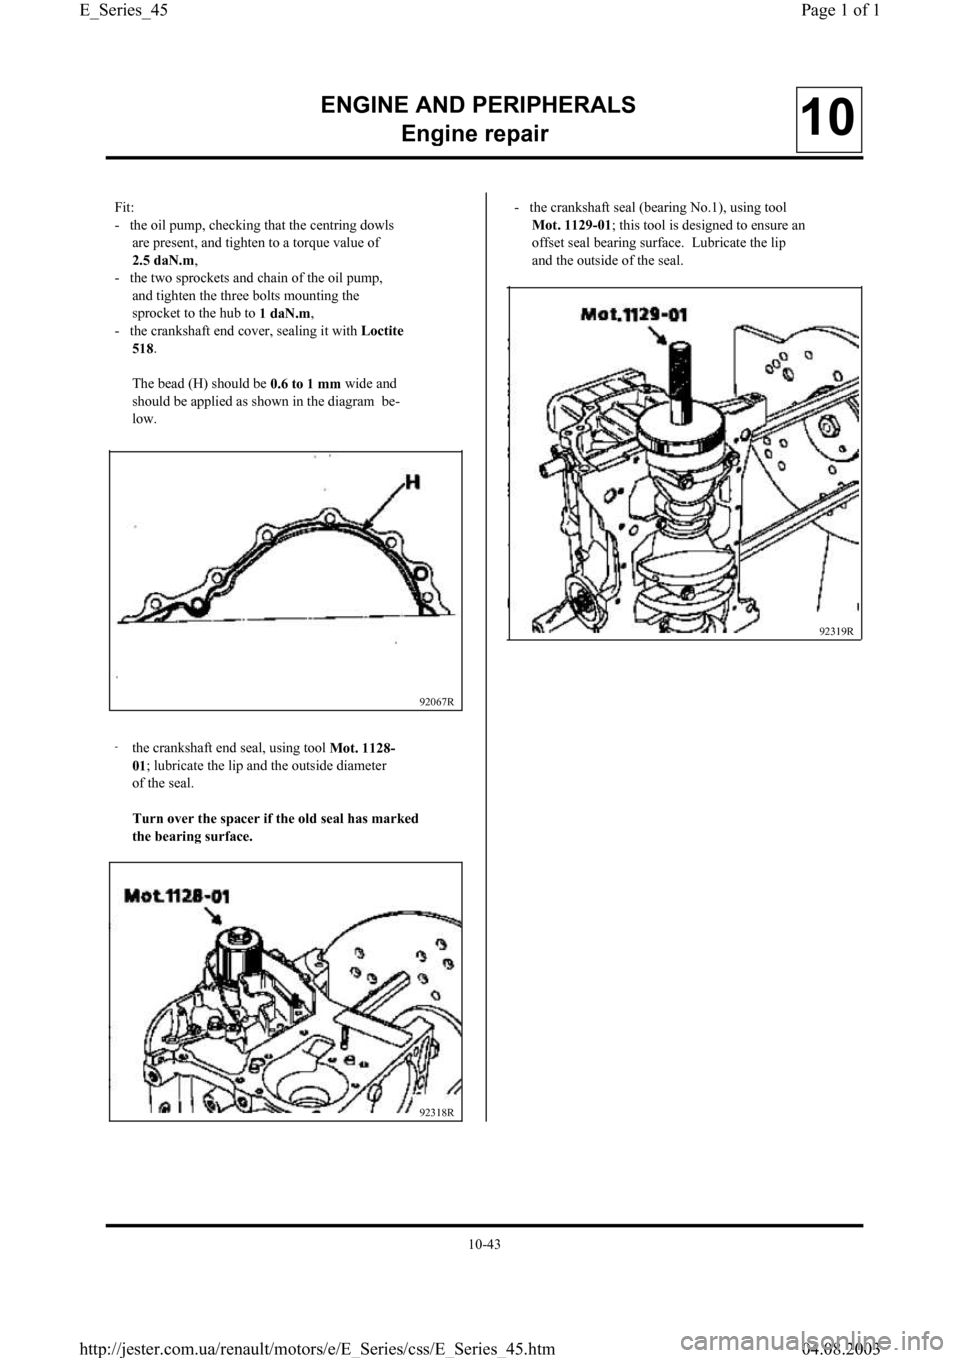 RENAULT CLIO 1997 X57 / 1.G Petrol Engines Workshop Manual, Page 45